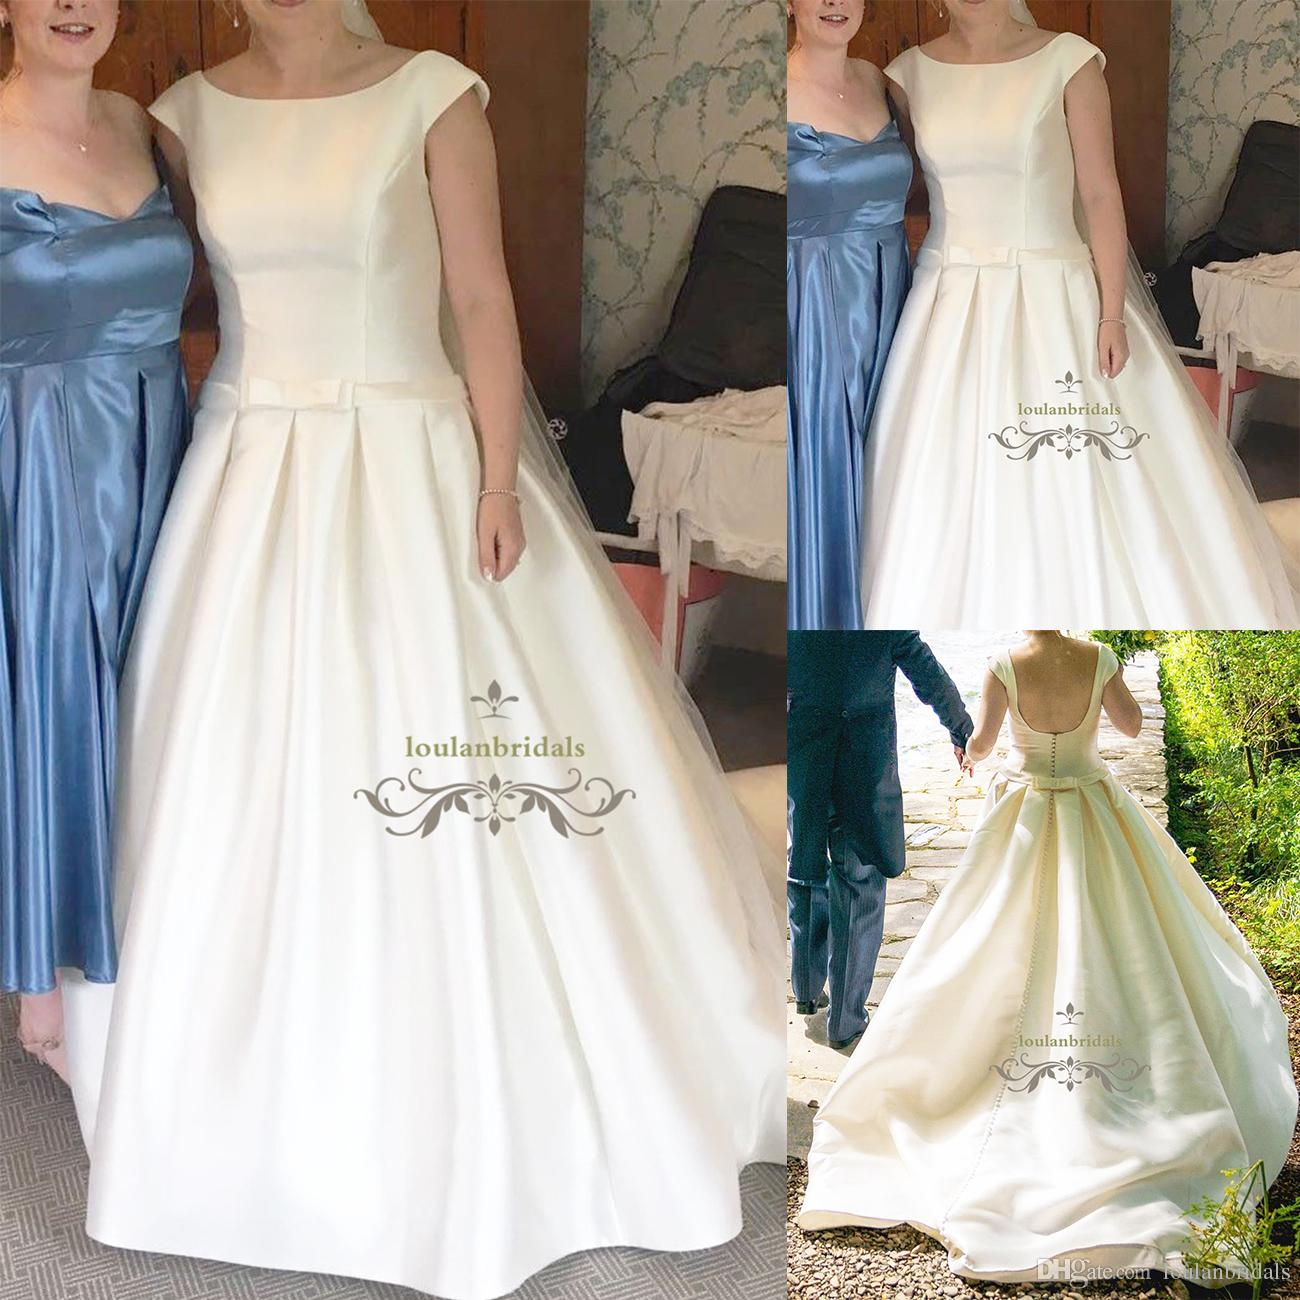 Ball Gown Drop Waist Box Pleat Skirt Wedding Dress Boat Neckline ...